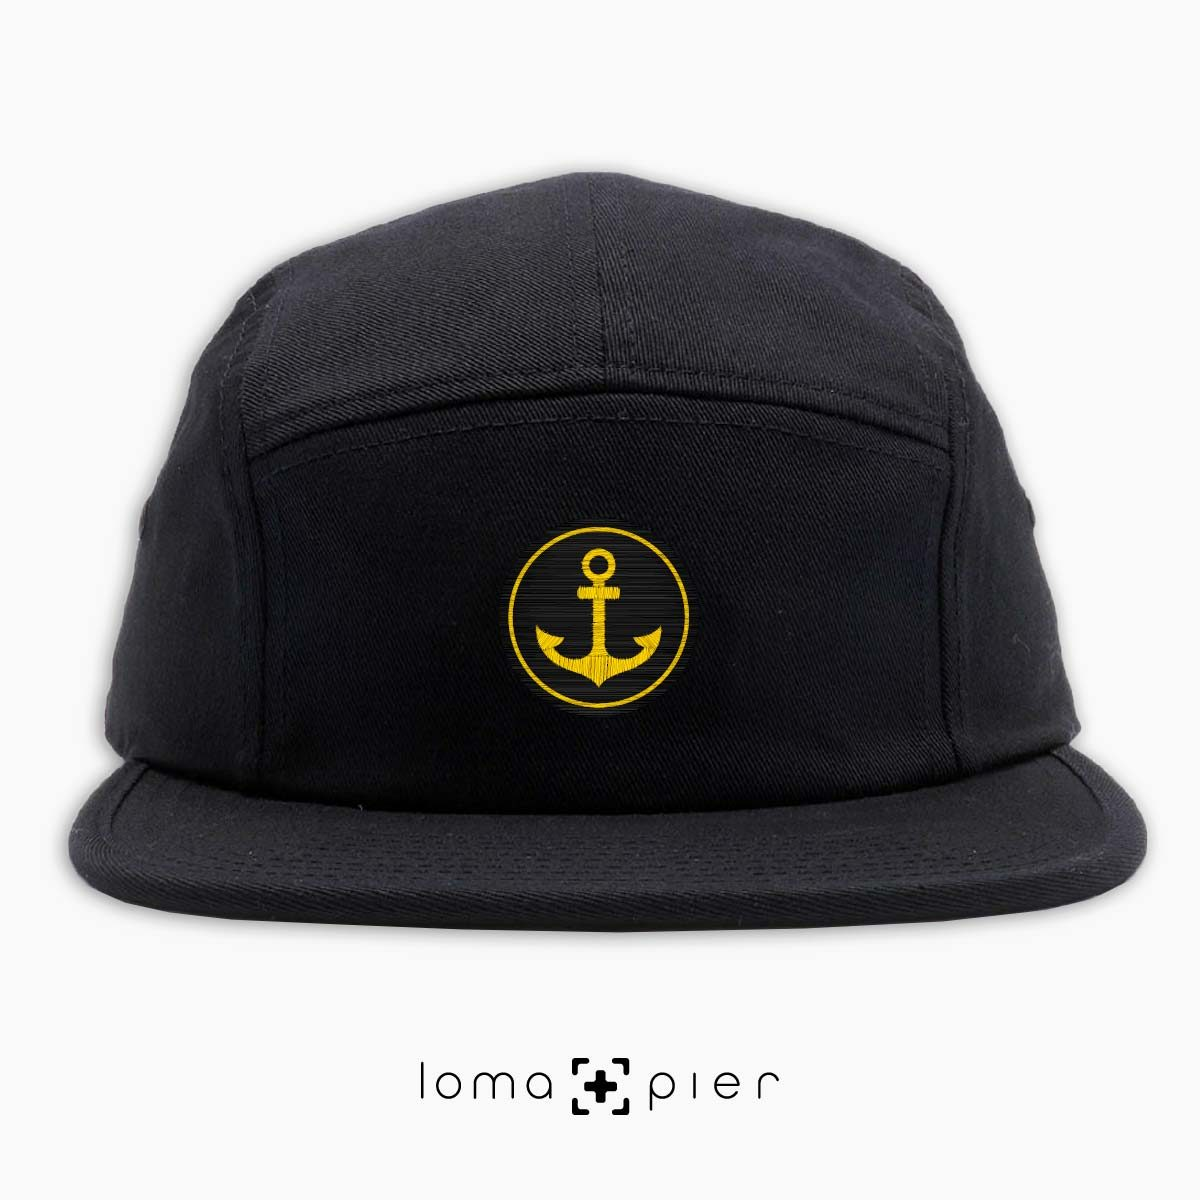 ANCHOR icon 5-panel hat in black by loma+pier hat store